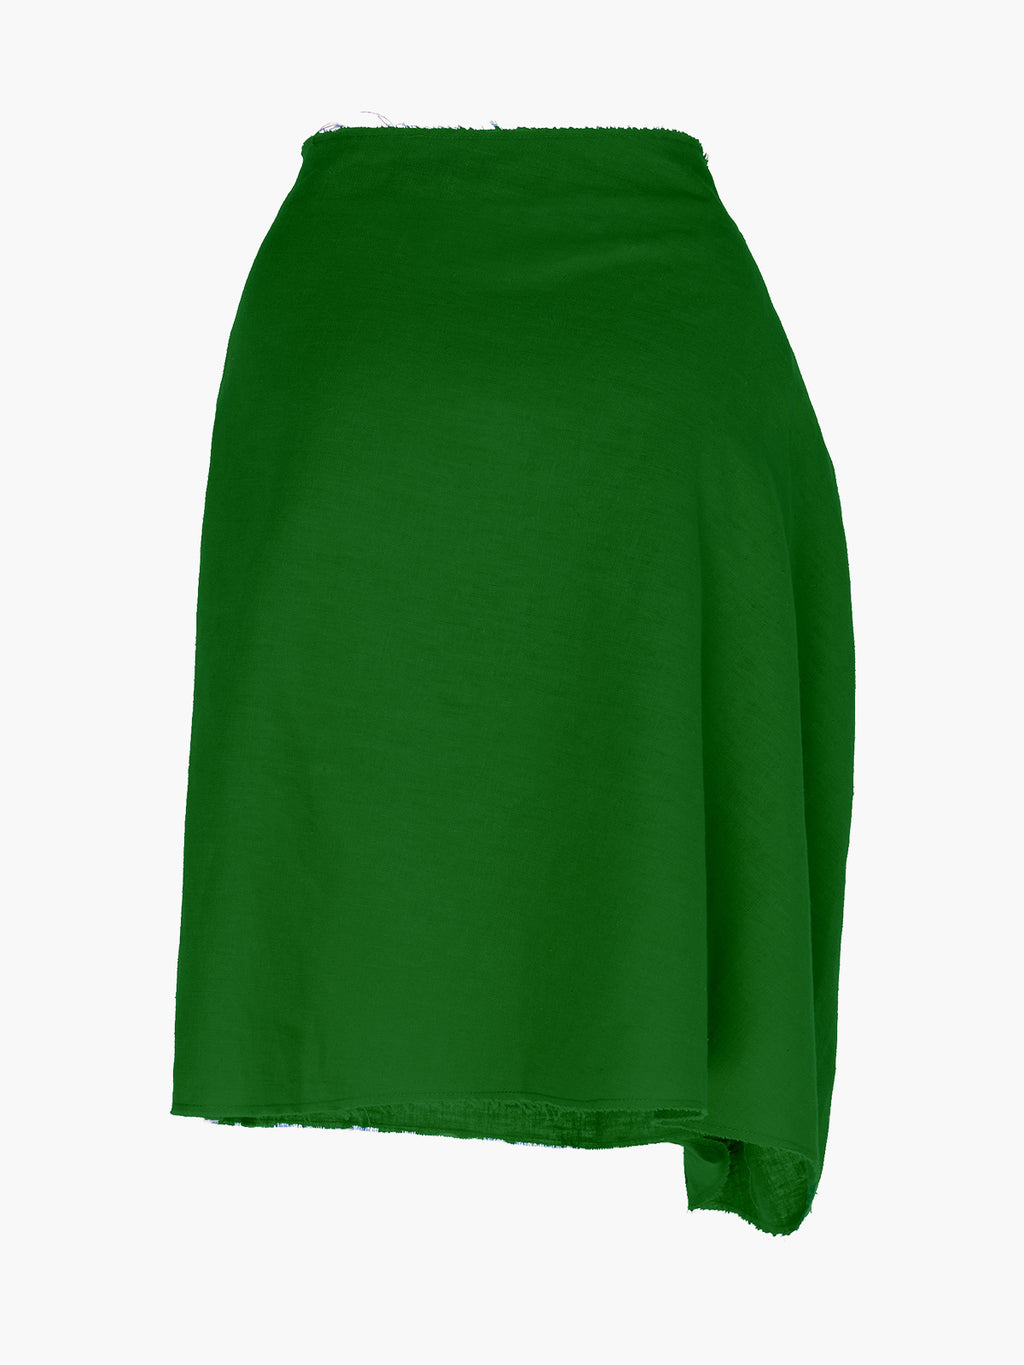 Zinnia Skirt | Green Linen